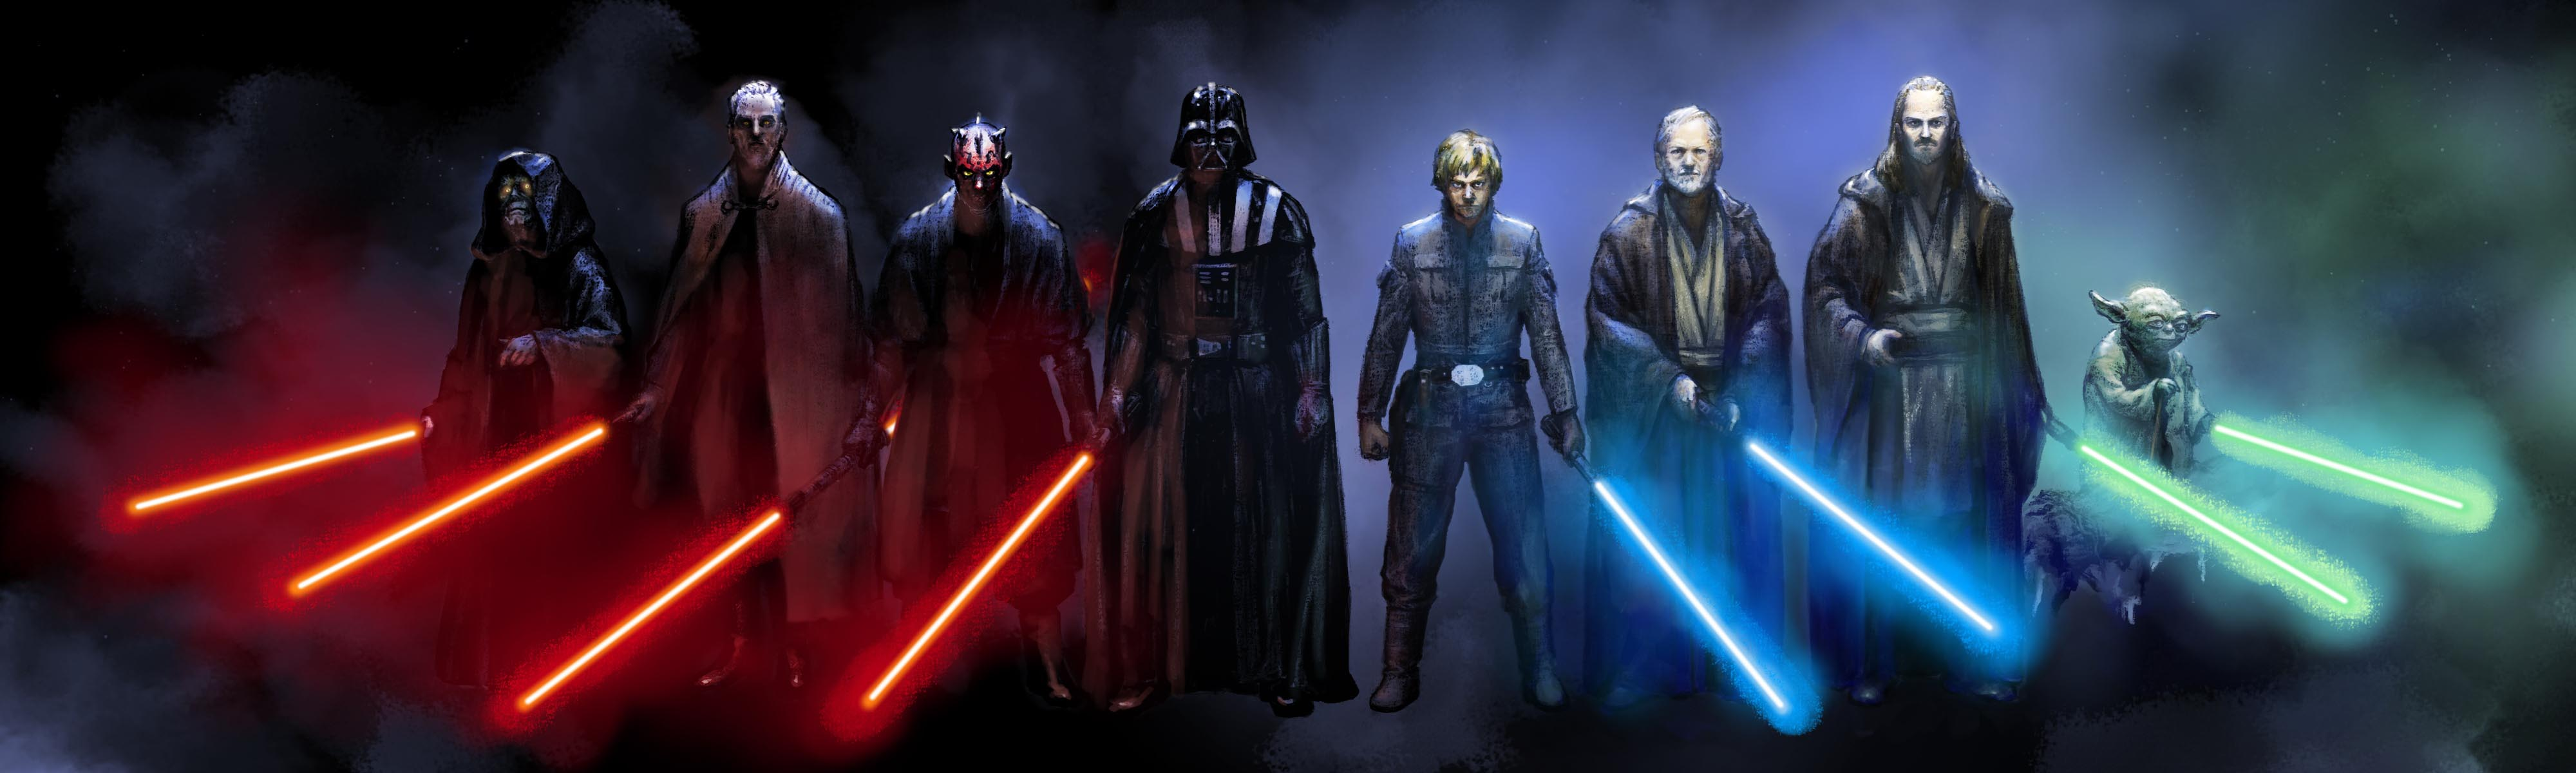 on the way we decided to put together 12 badass Star Wars wallpapers 4000x1200